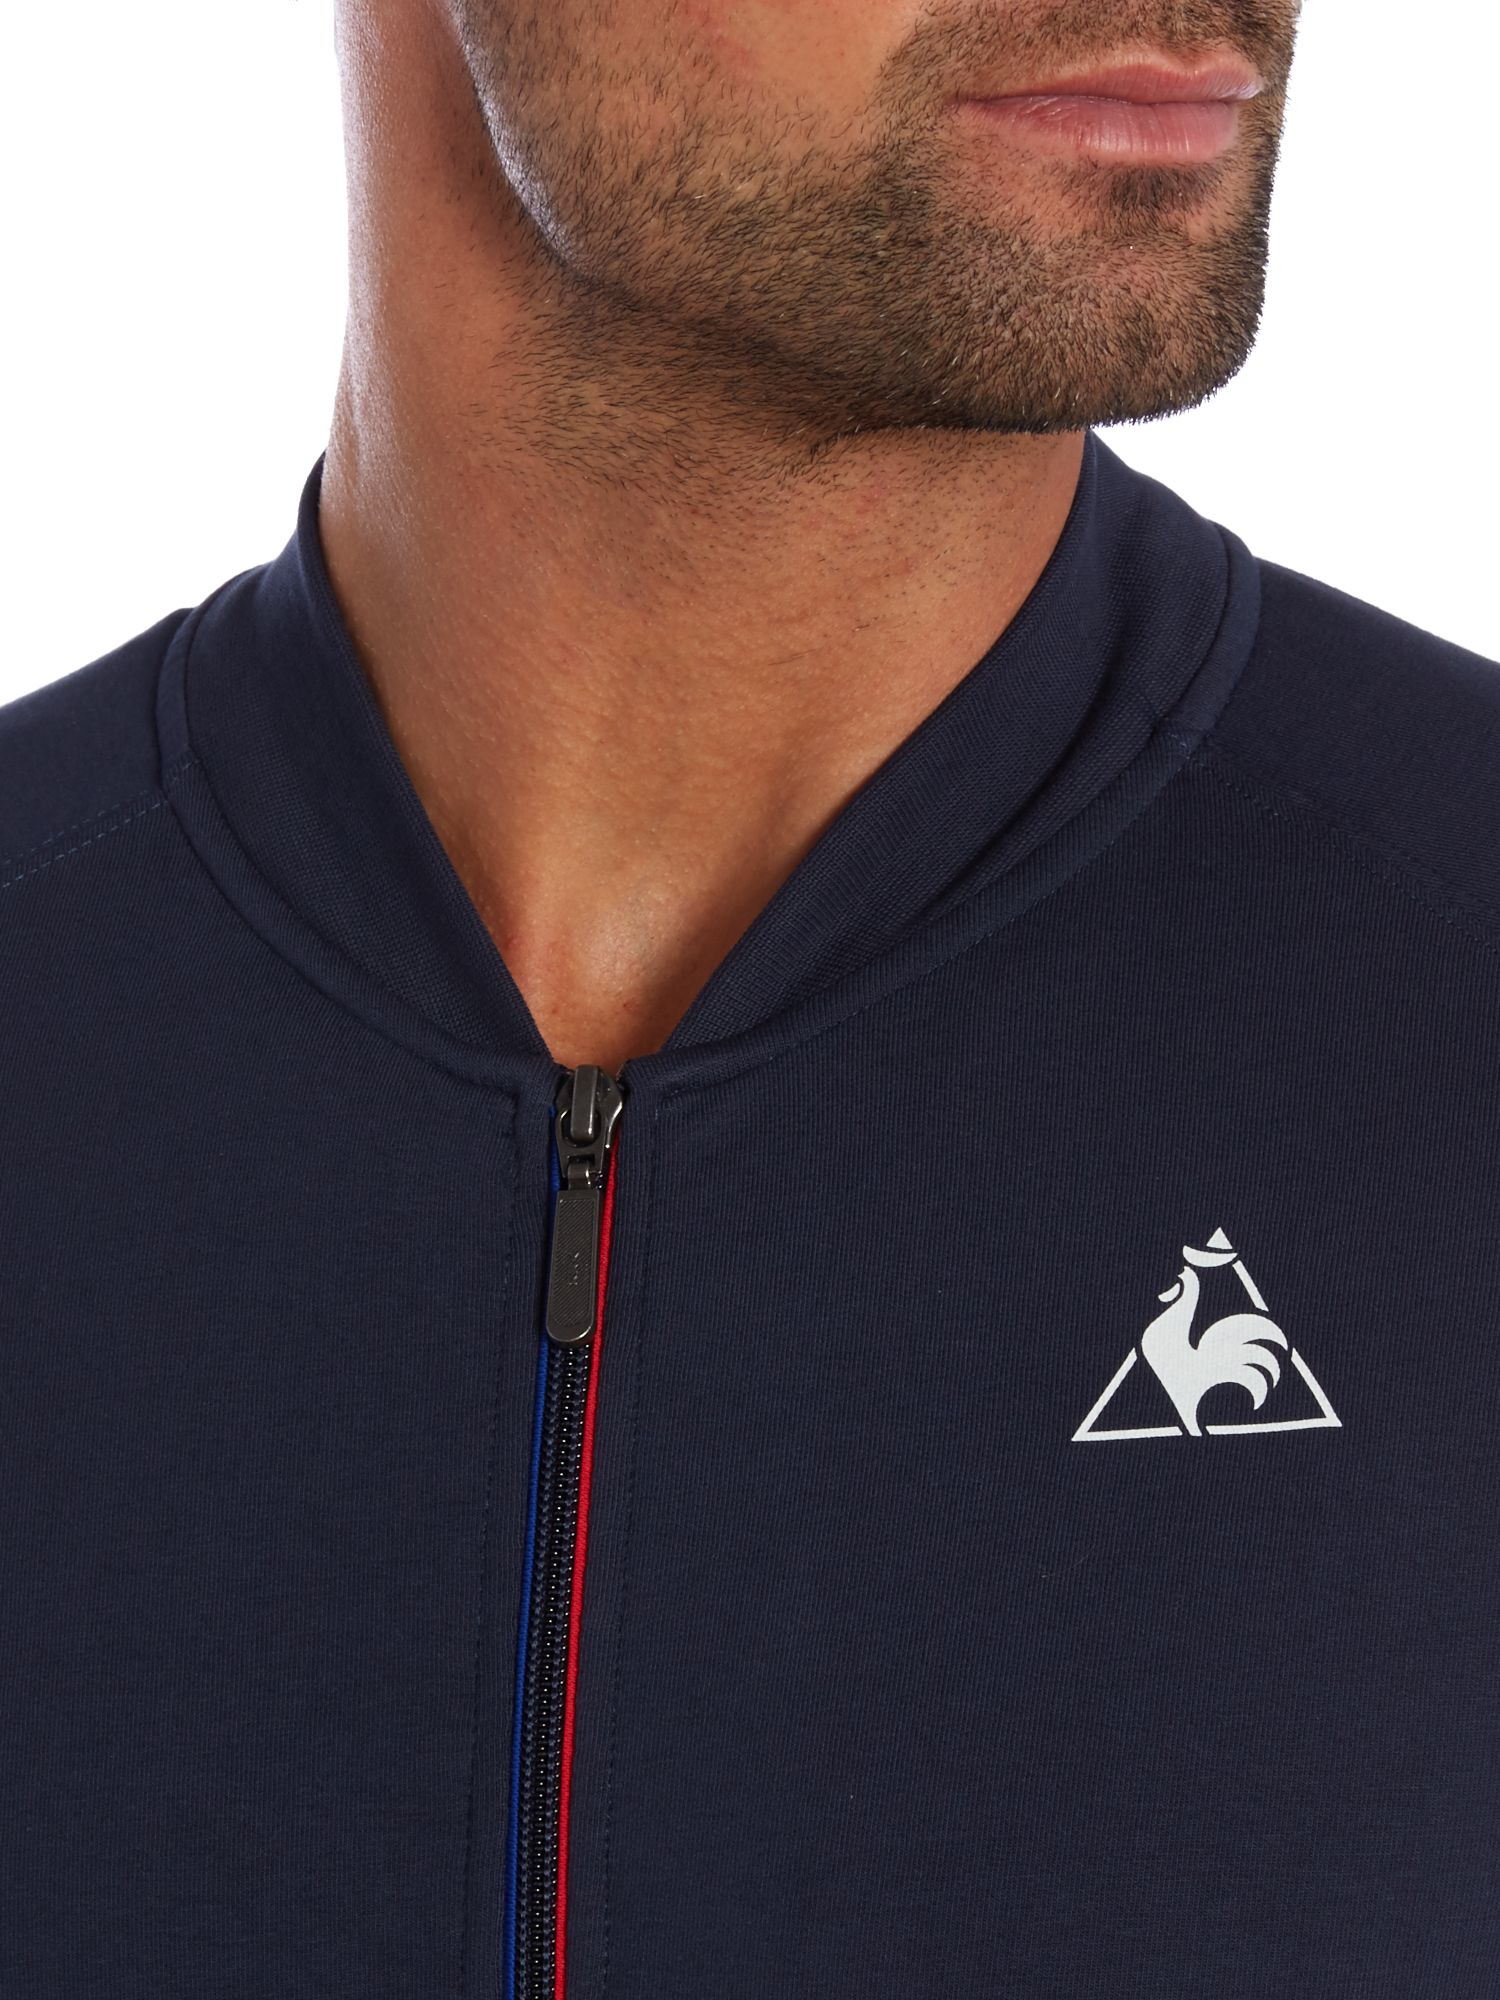 Le Coq Sportif Graphic Crew Neck Pull Over Jumpers in Blue for Men